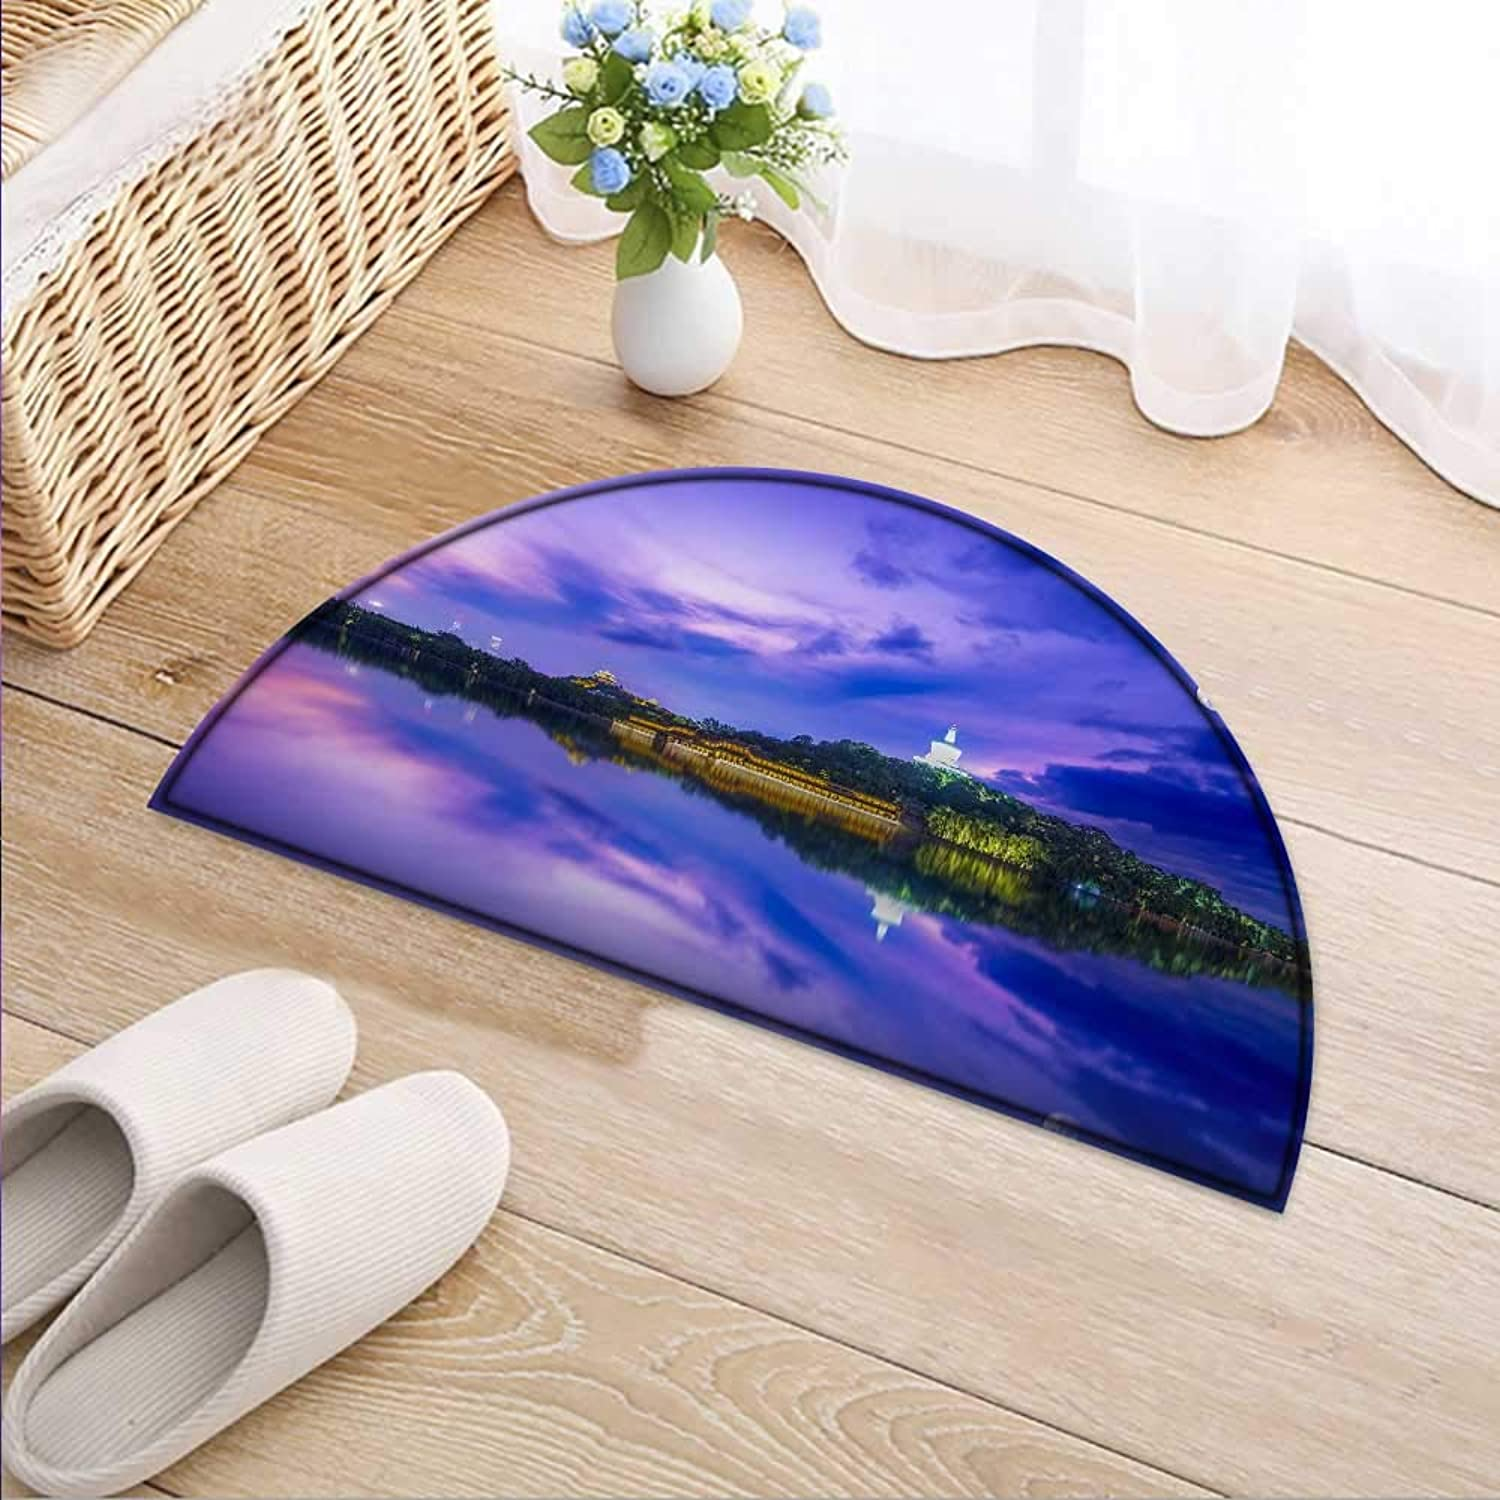 Semicircle Area Rug Carpet The Night Scene Background of The city's Moon Lake Door mat Indoors Bathroom Mats Non Slip W47 x H32 INCH